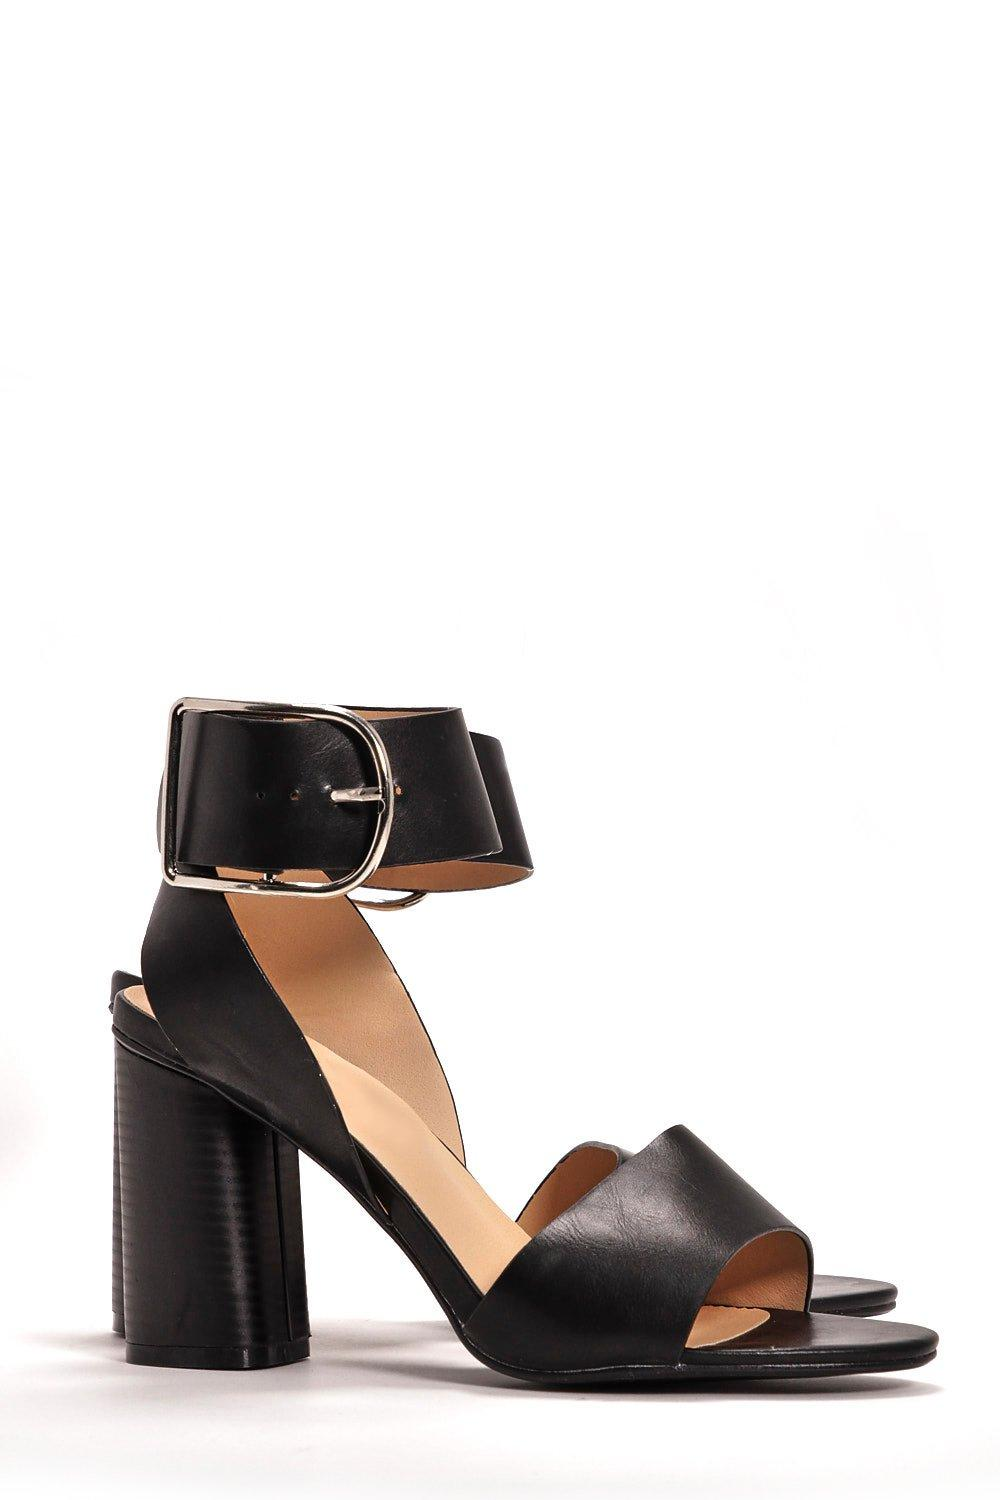 Discount Cost oversized buckle stiletto sandals Discount Outlet Store Buy Cheap Classic Wholesale Online wC9Q2q